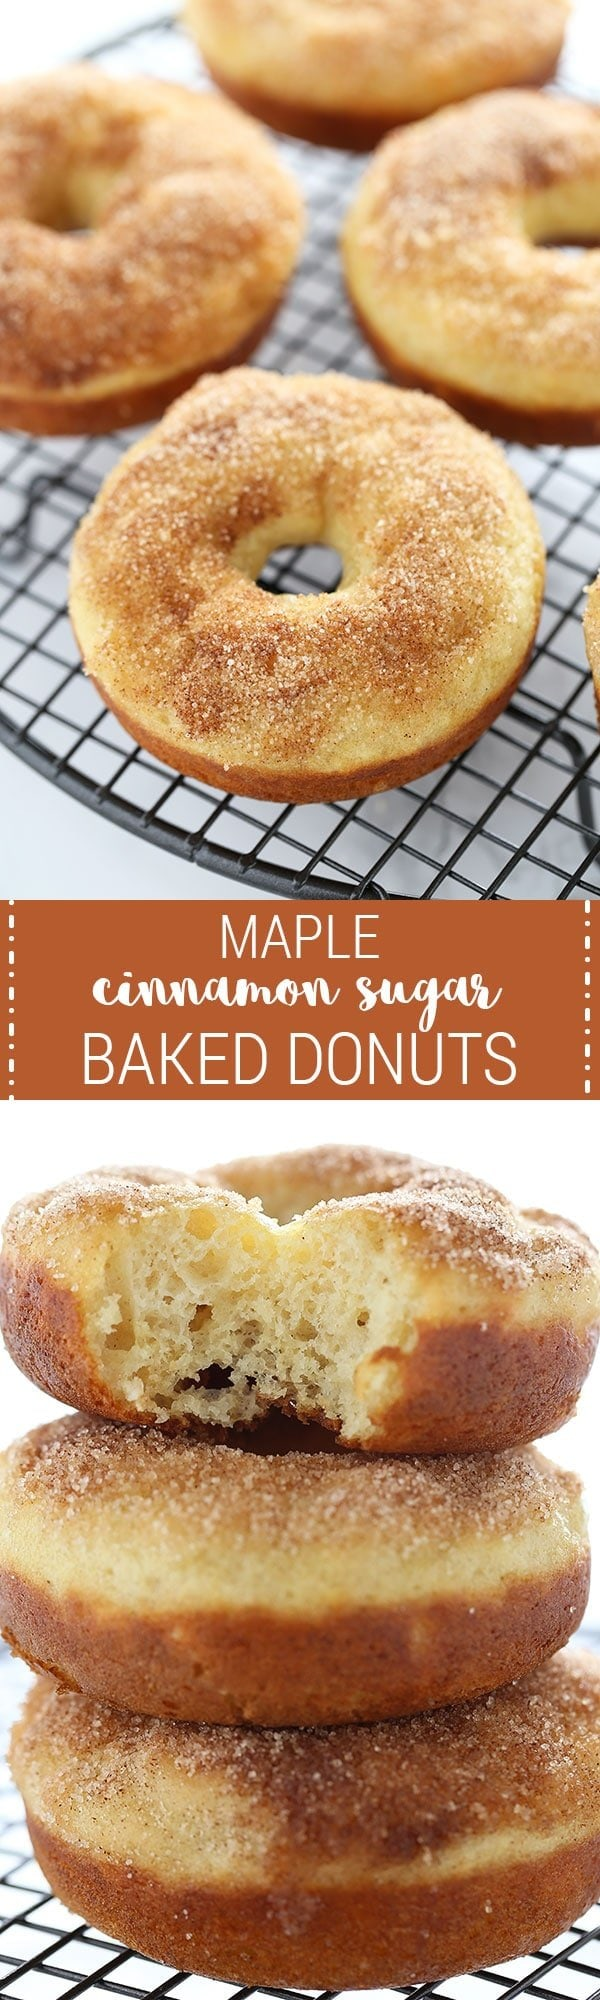 These take less than 30 MINUTES! And they're made light with yogurt!! Perfect quick & easy fall sweet recipe.